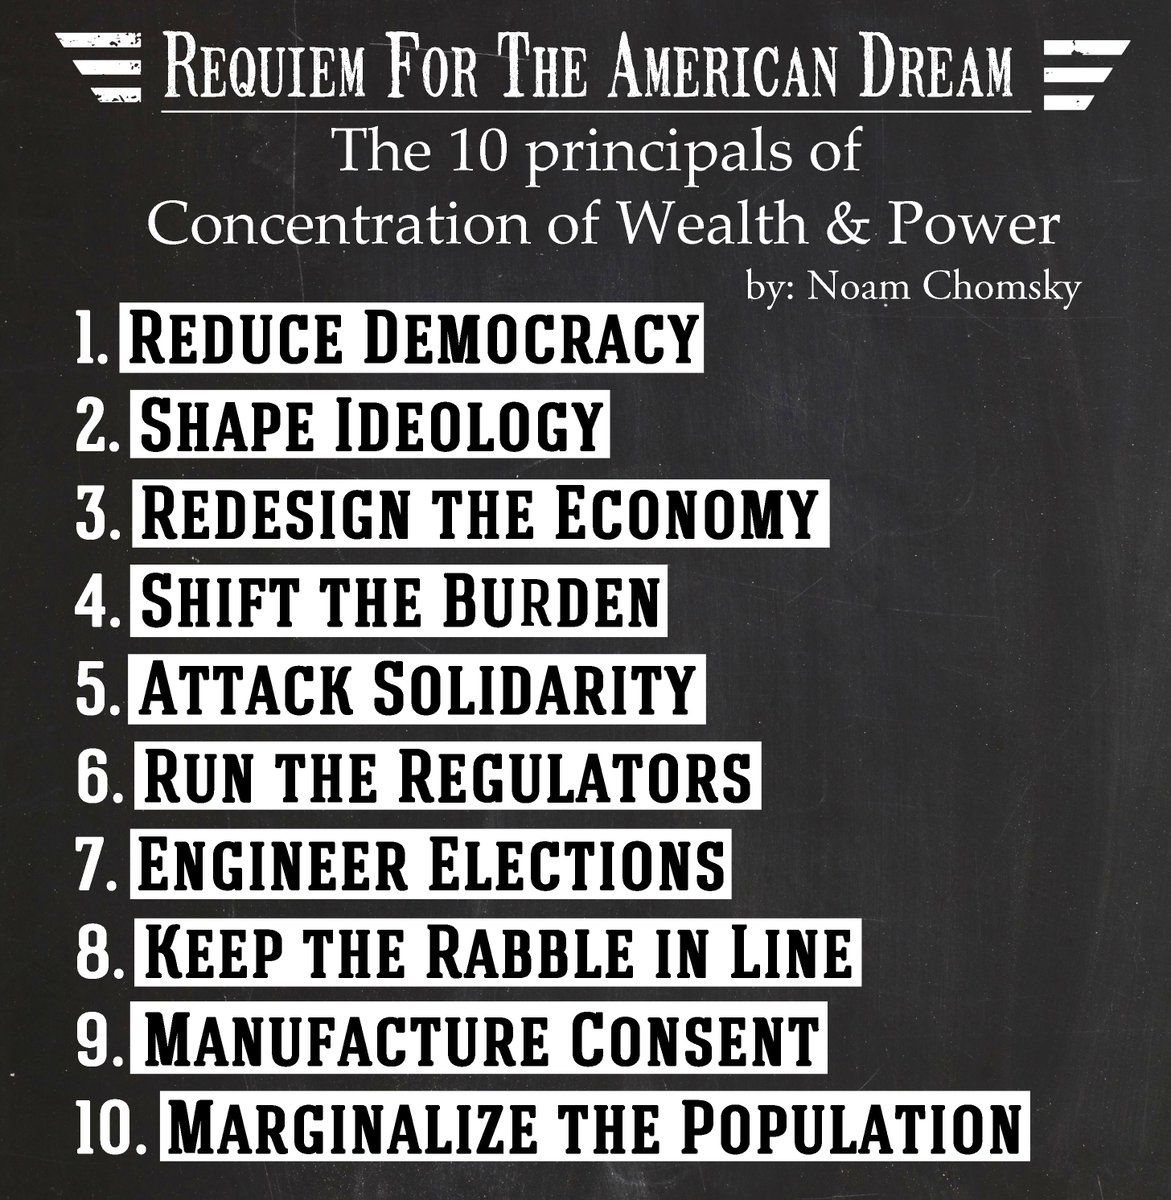 The American Dream Quotes Noam Chomsky's Requiem For The American Dreamthe 10 Principals